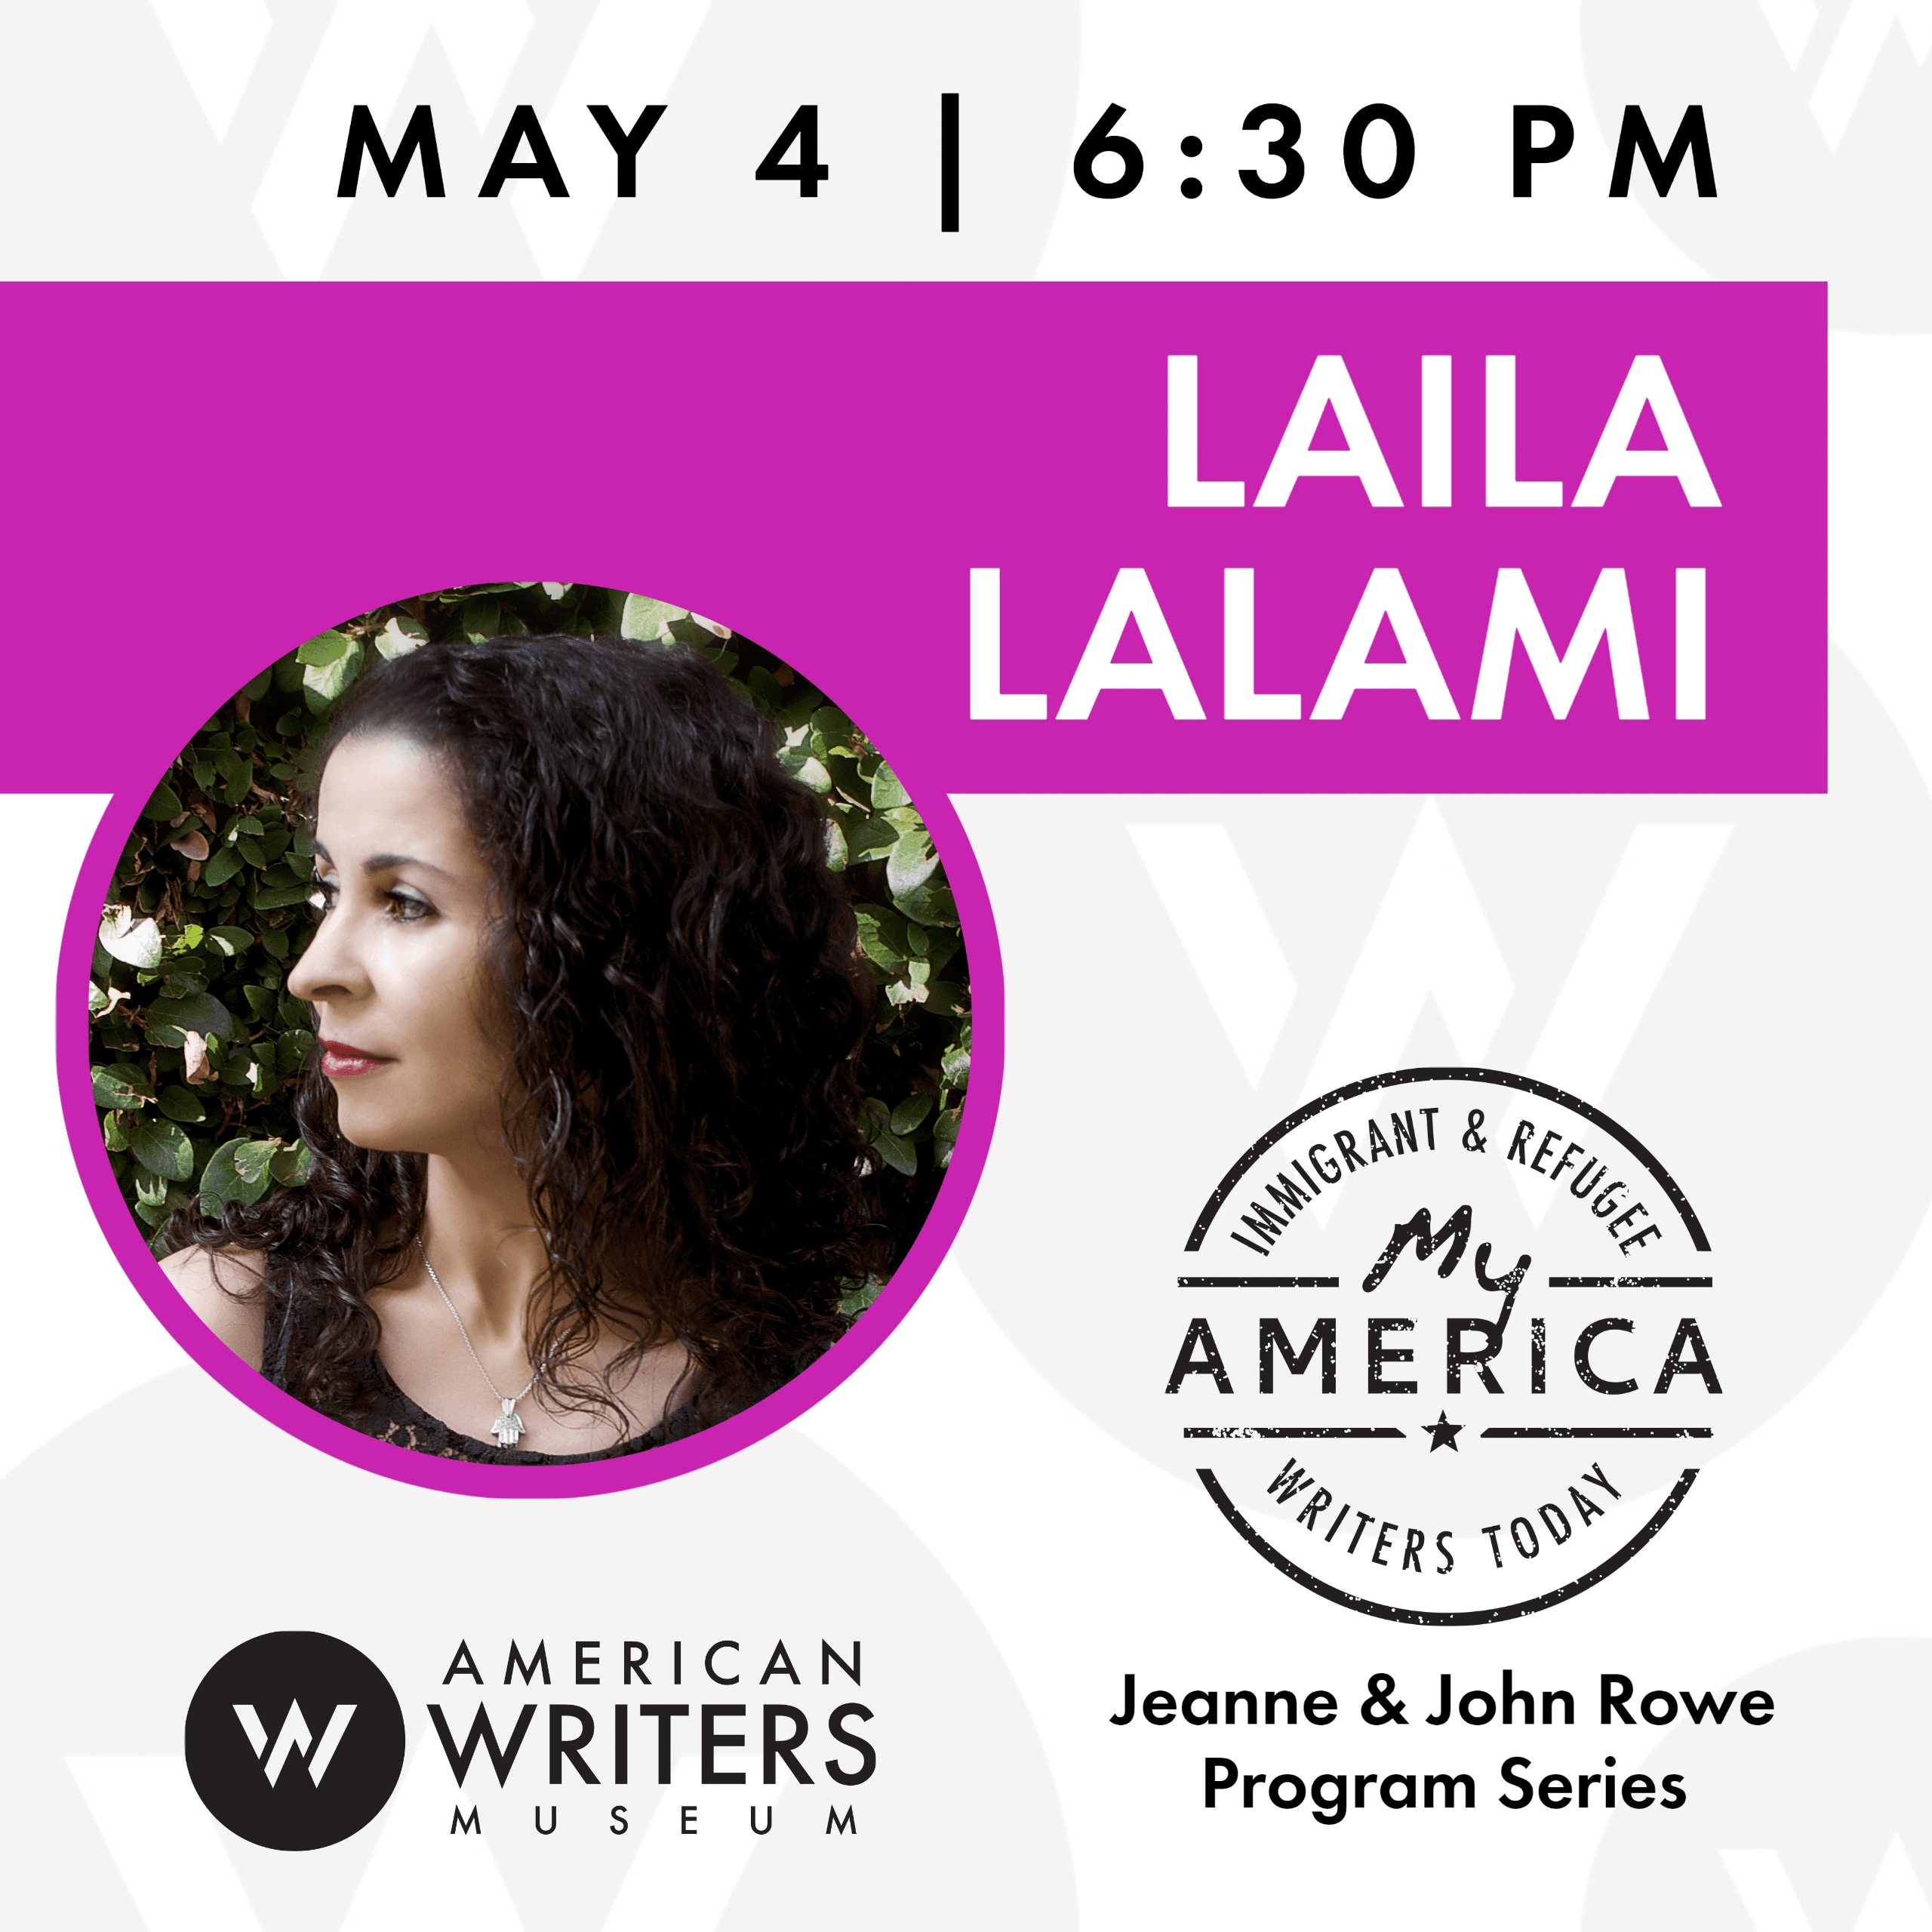 Laila Lalami live webinar with the Aerican Writers Museum on May 4, 2020 at 6:30 pm